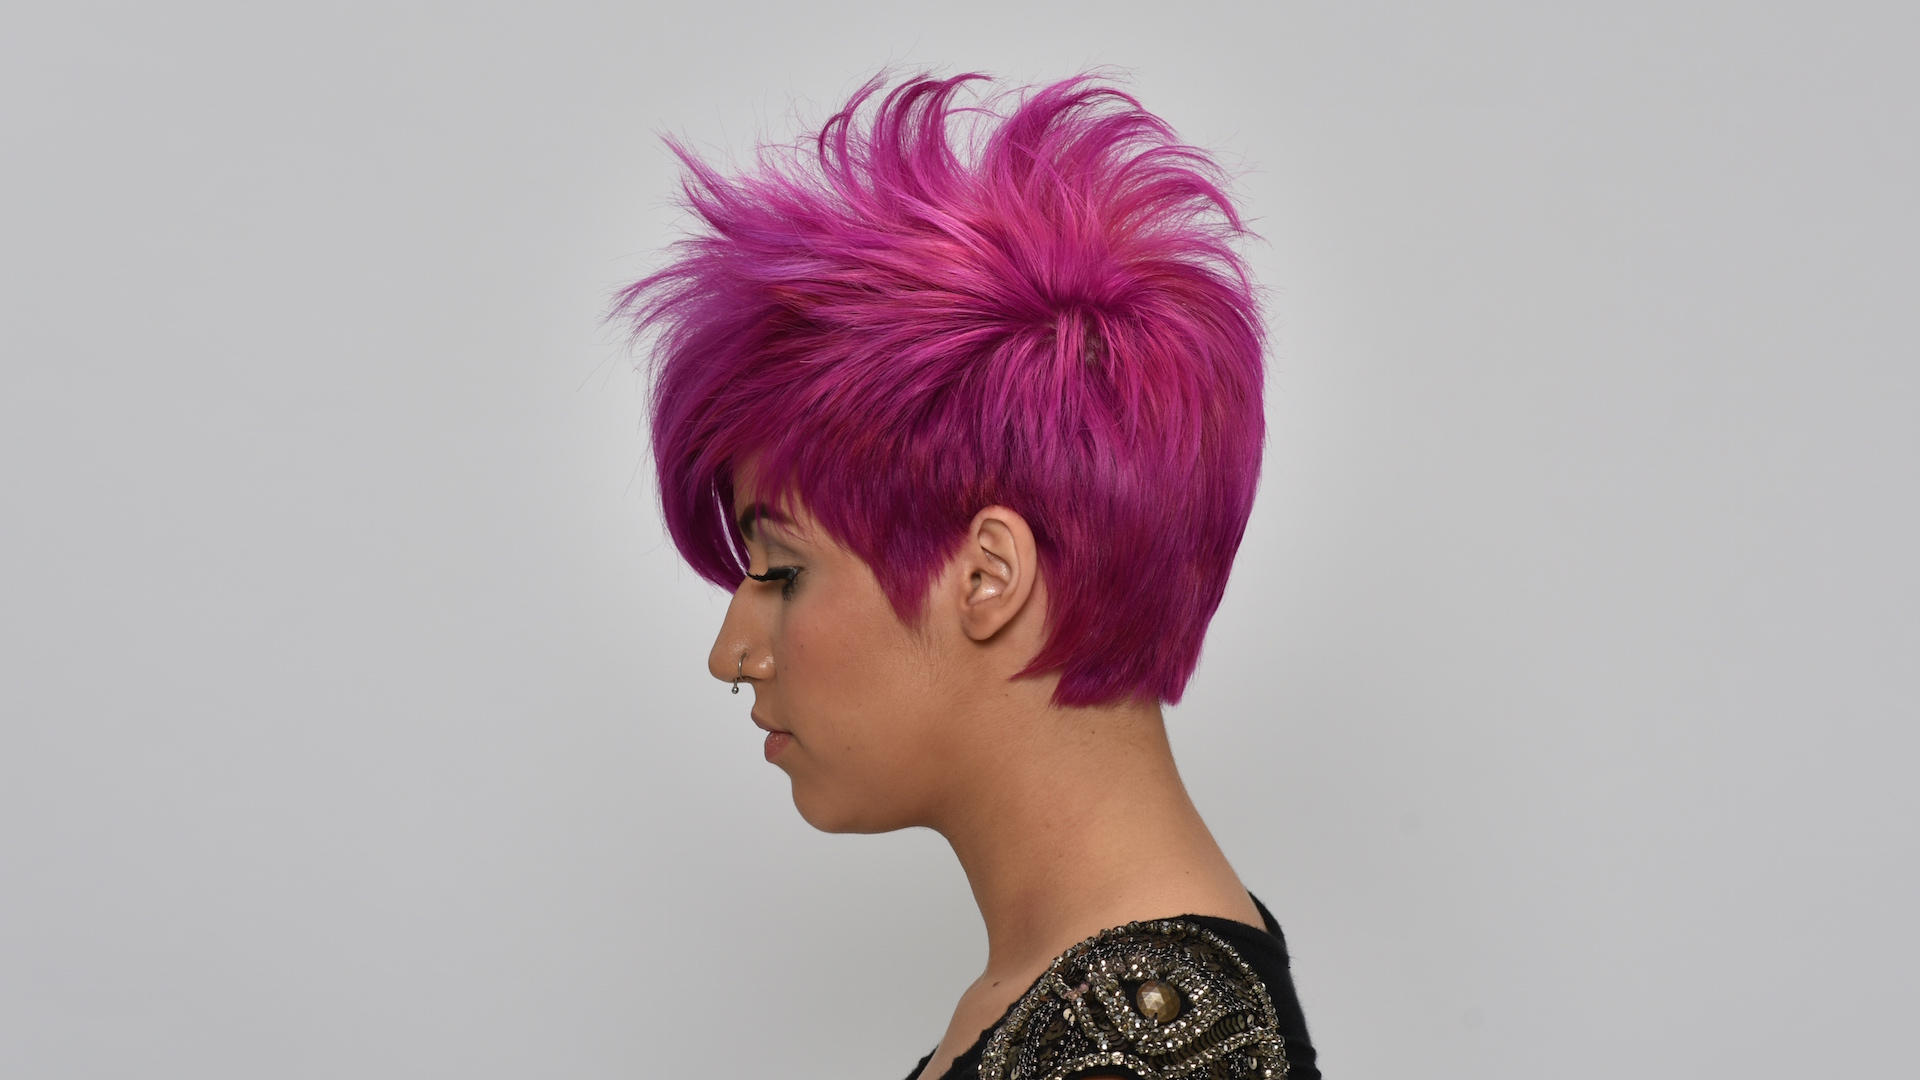 Dallas best hair colorist plano color specialist for Aalam salon prices